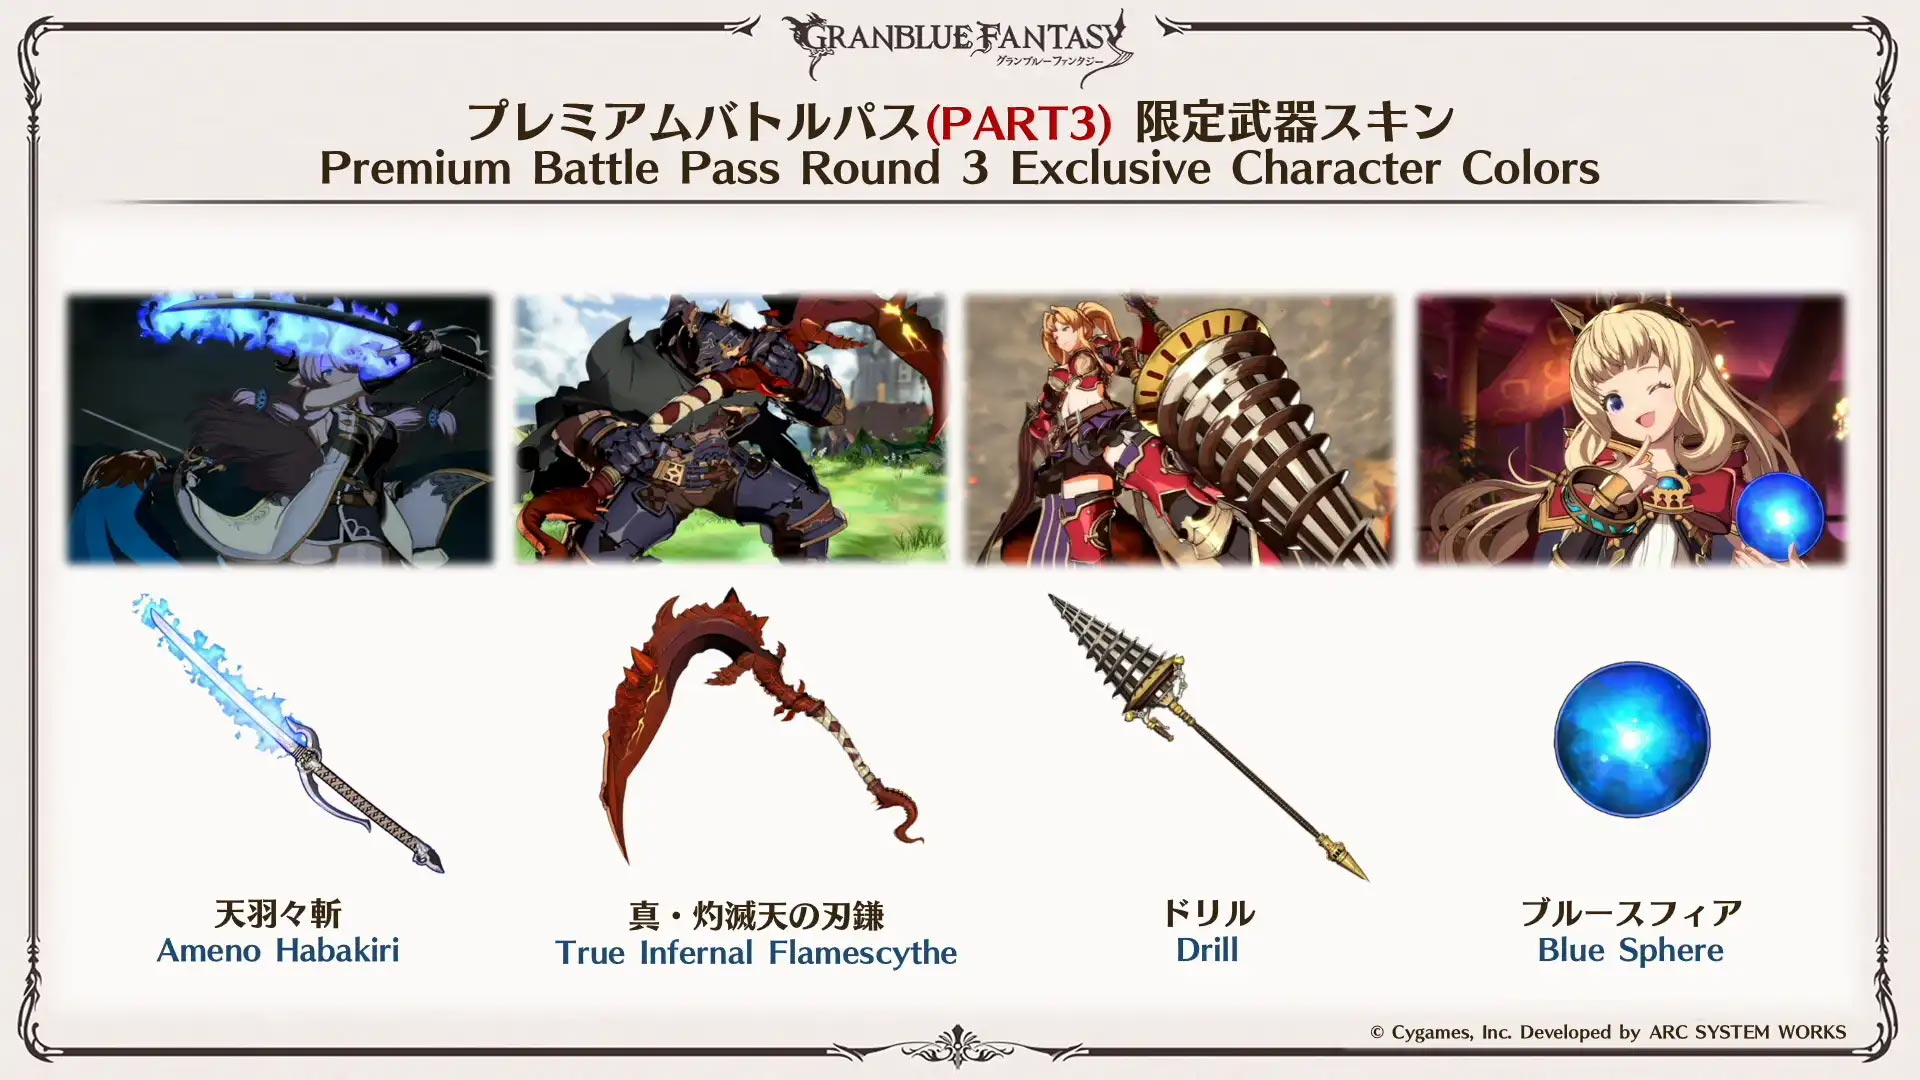 Granblue Fantasy Versus Eustace Reveal Trailer Gallery 10 out of 11 image gallery